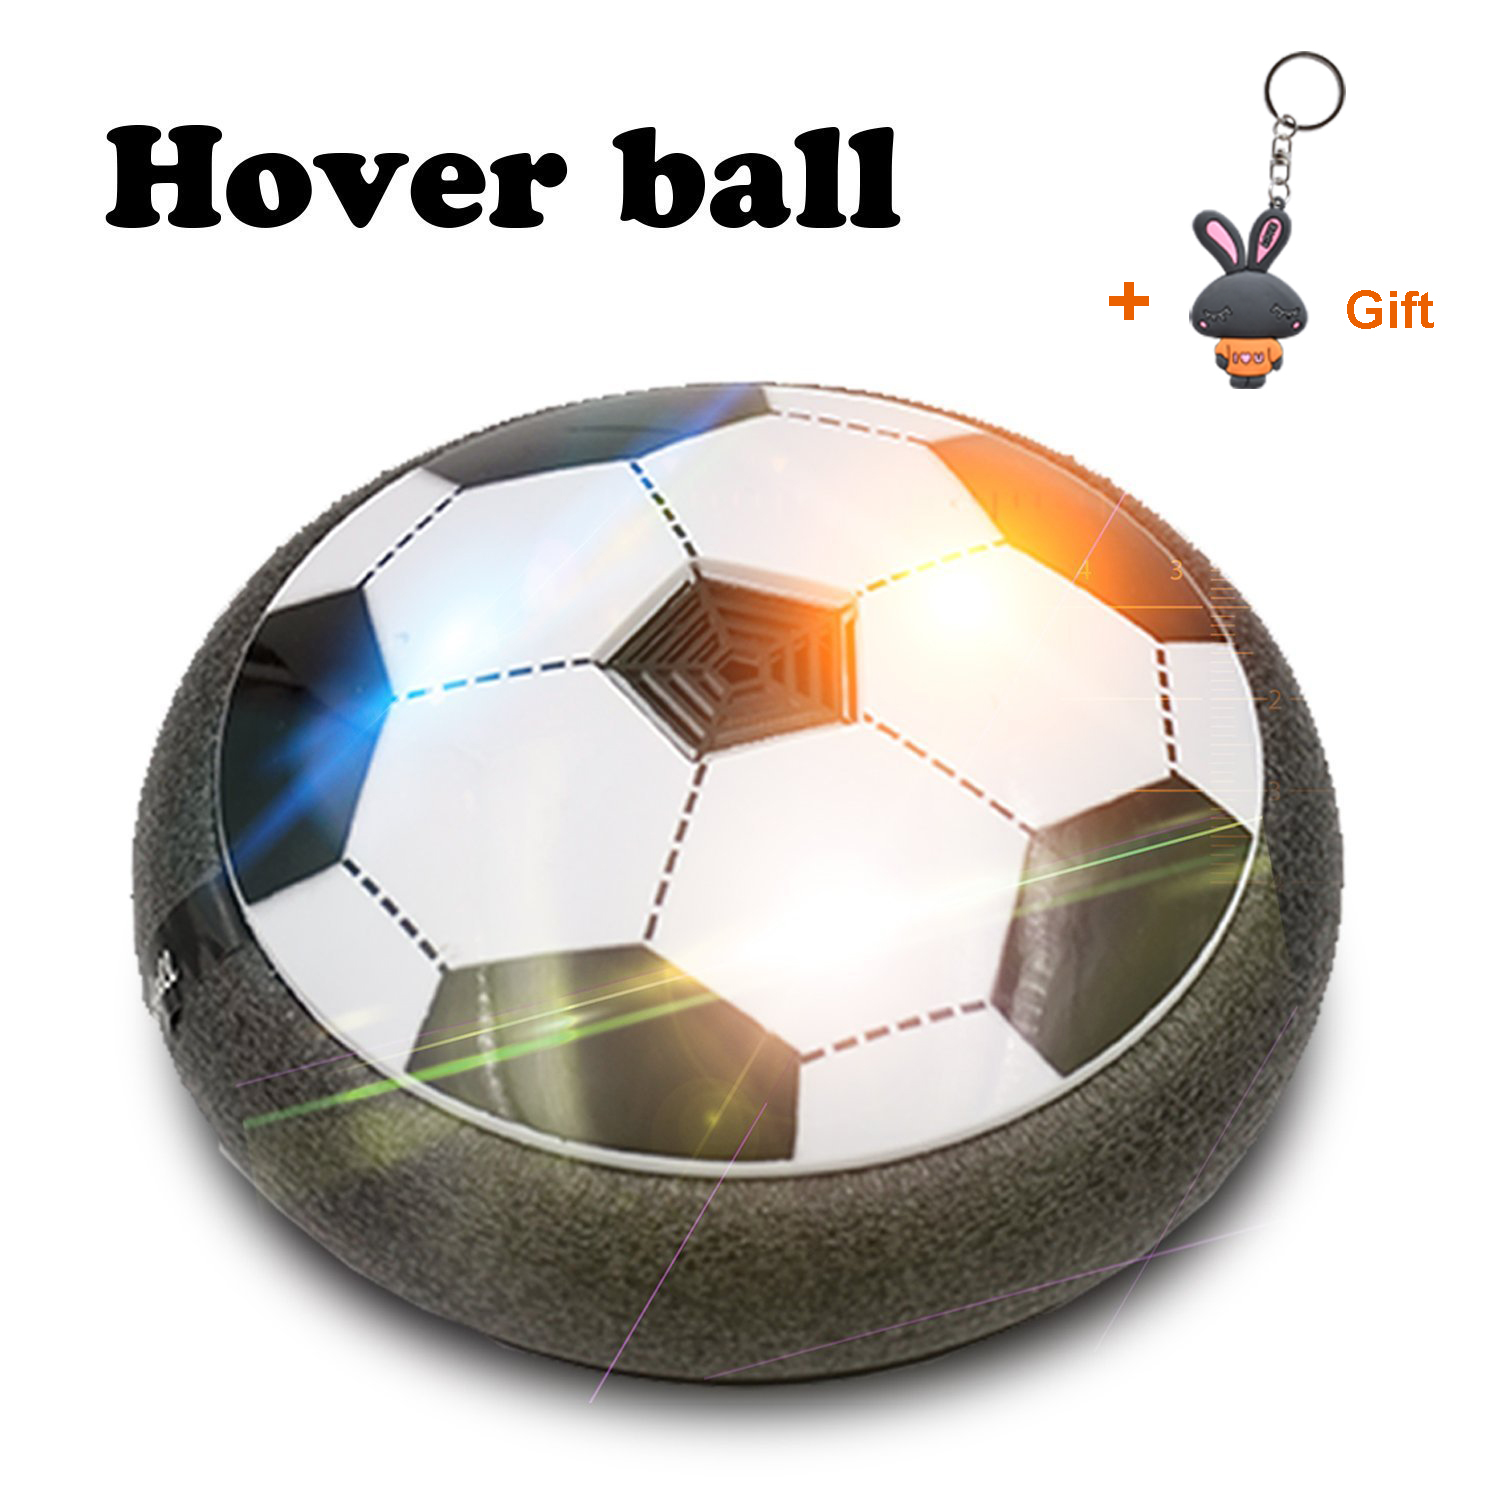 HOWADE Hover Ball Soccer Toy with Powerful LED Light Size 4 for Boys Girls Sport Children... by